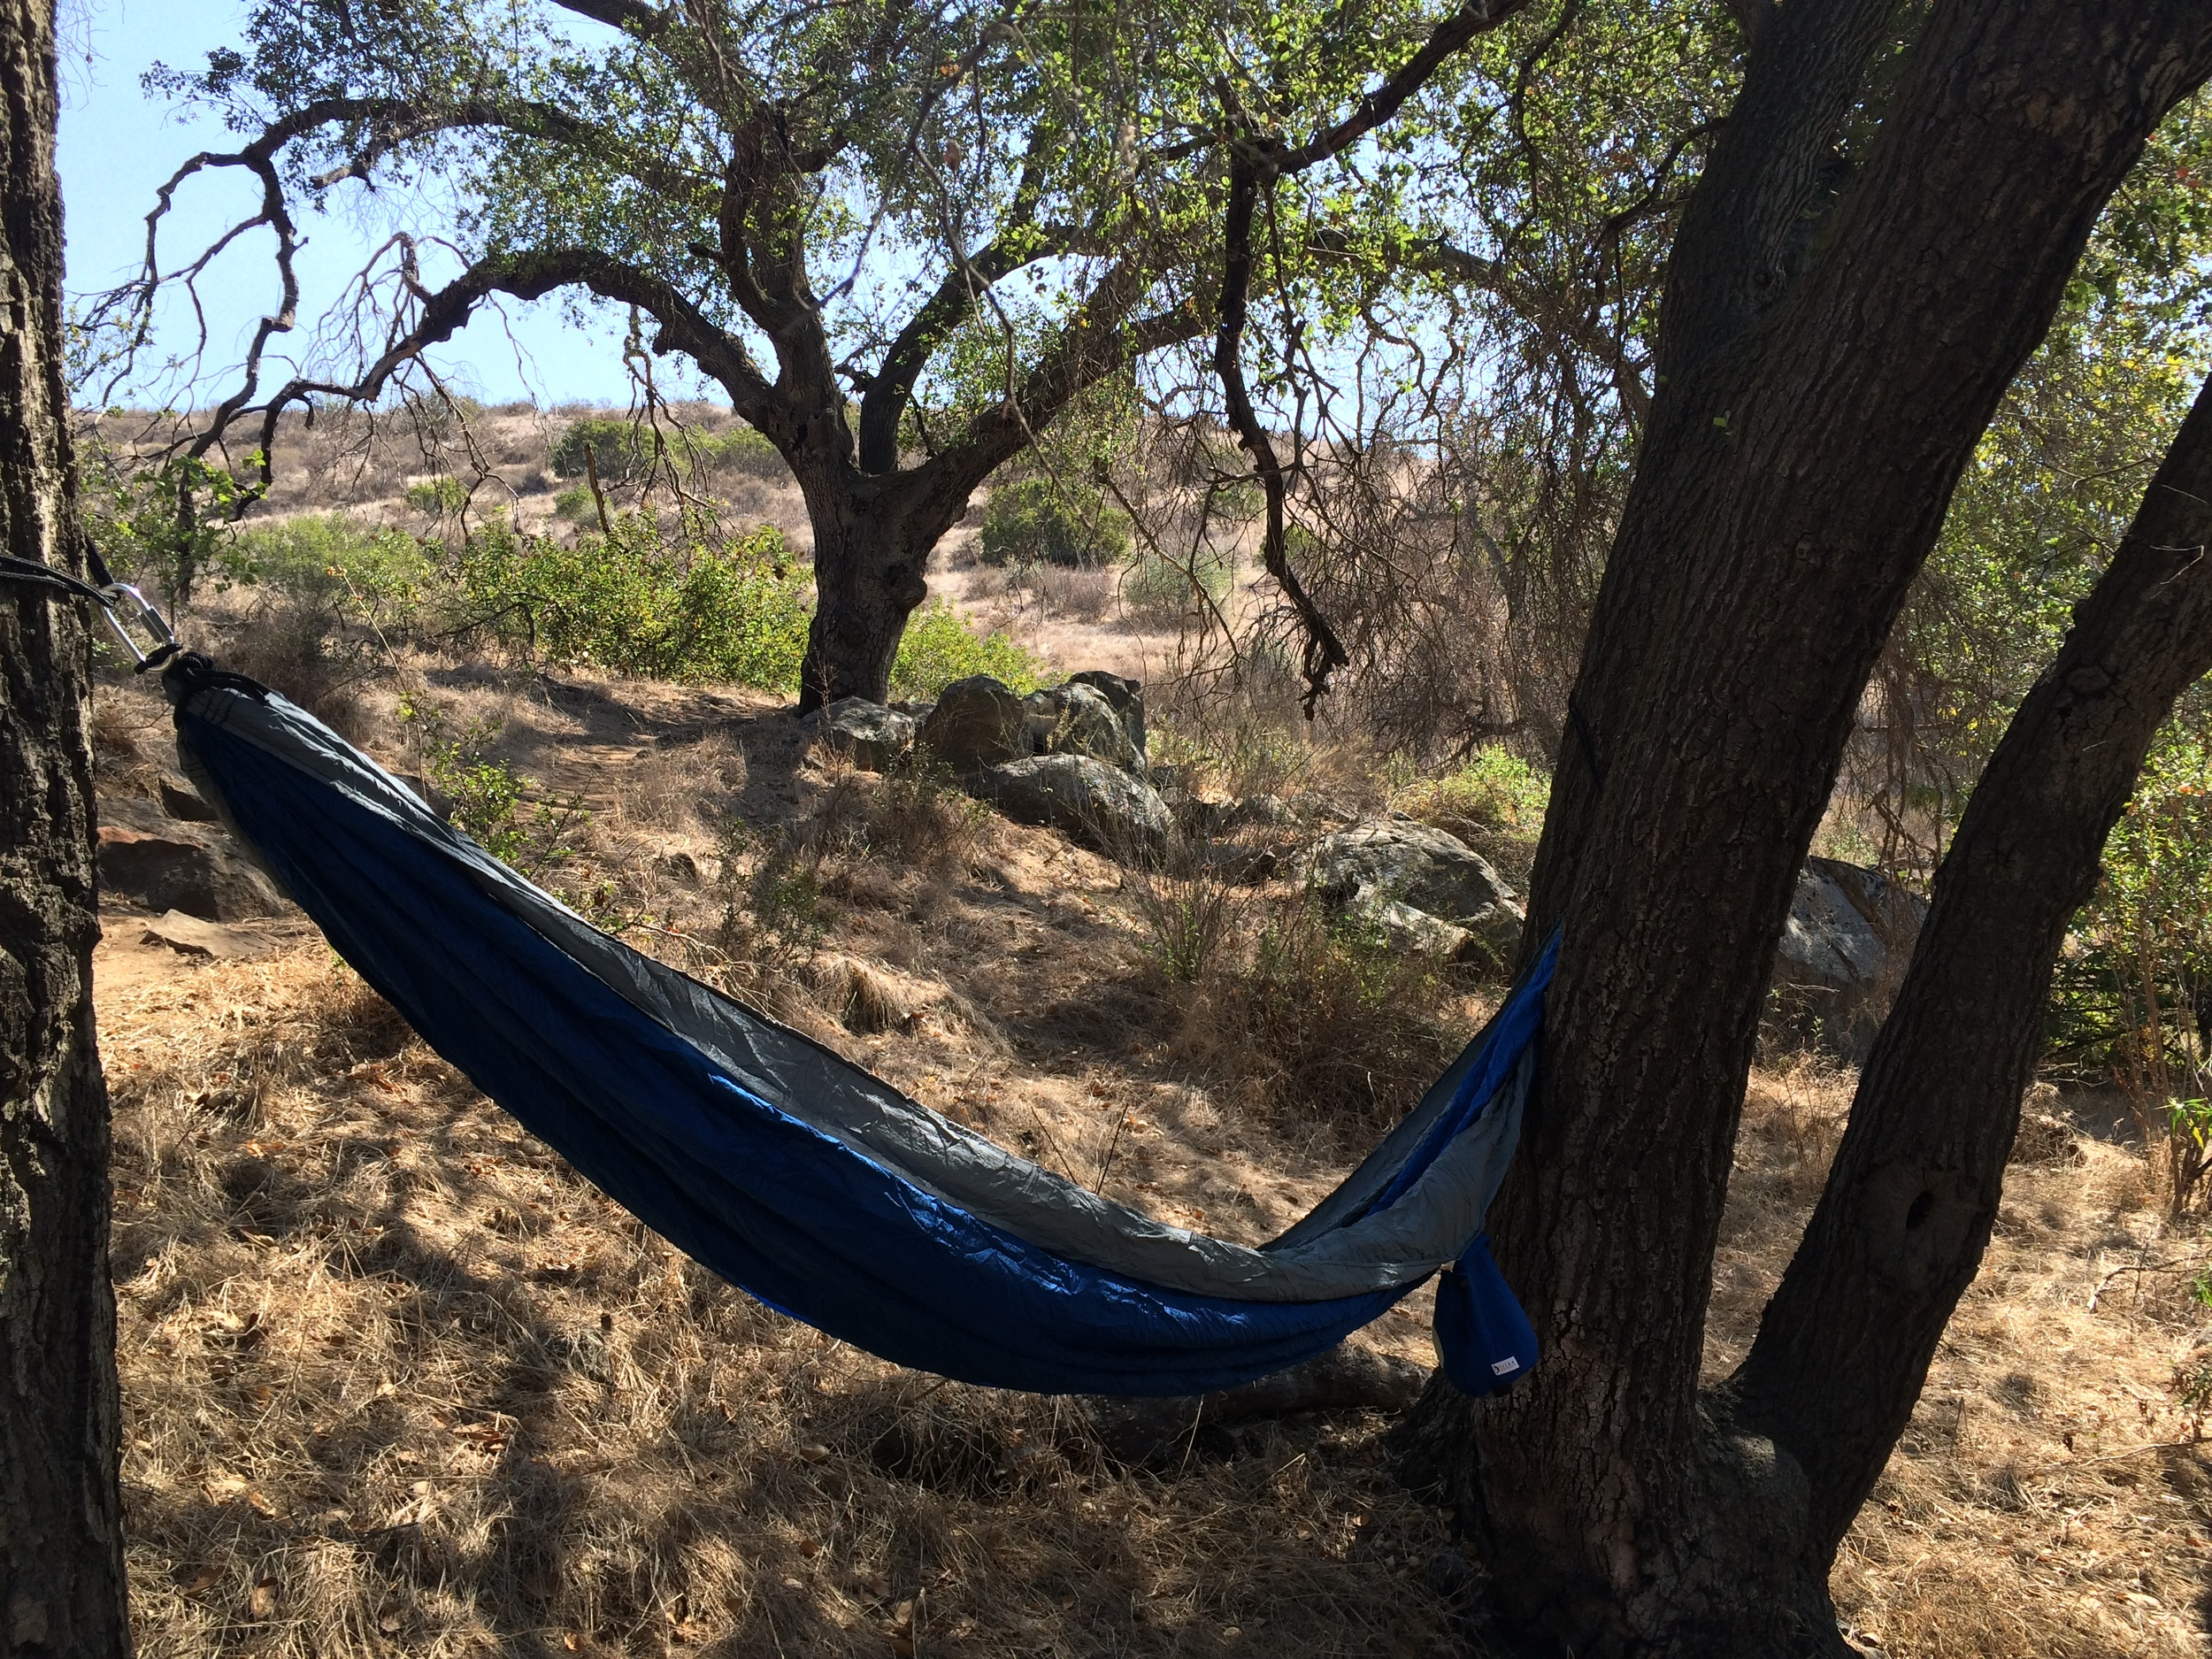 Nothing provides the wilderness experience like sleeping in a hammock.